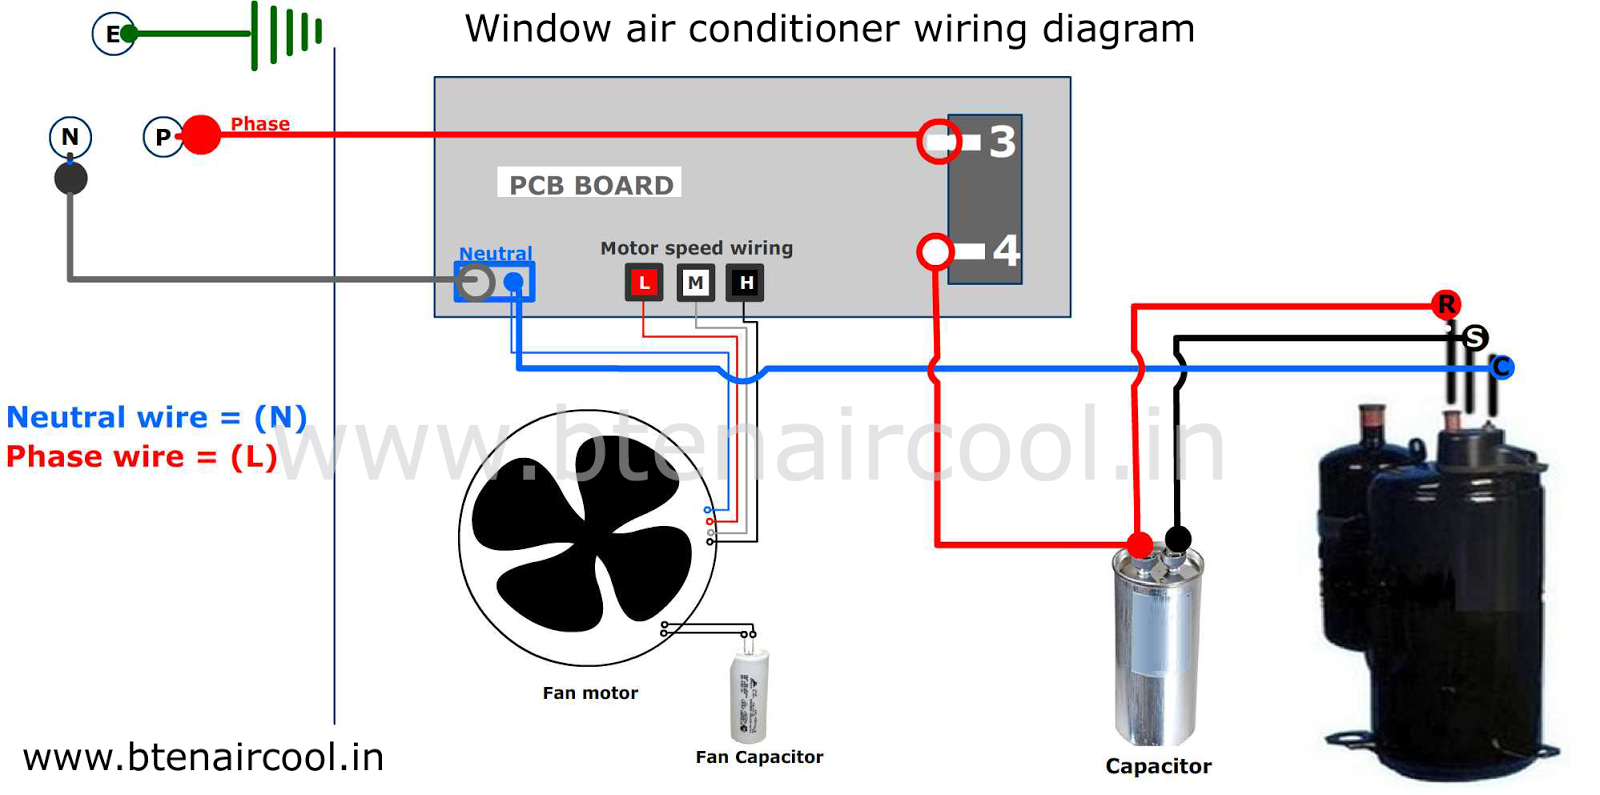 Ls 6339 Wiring Diagram Window Ac Unit Free Diagram